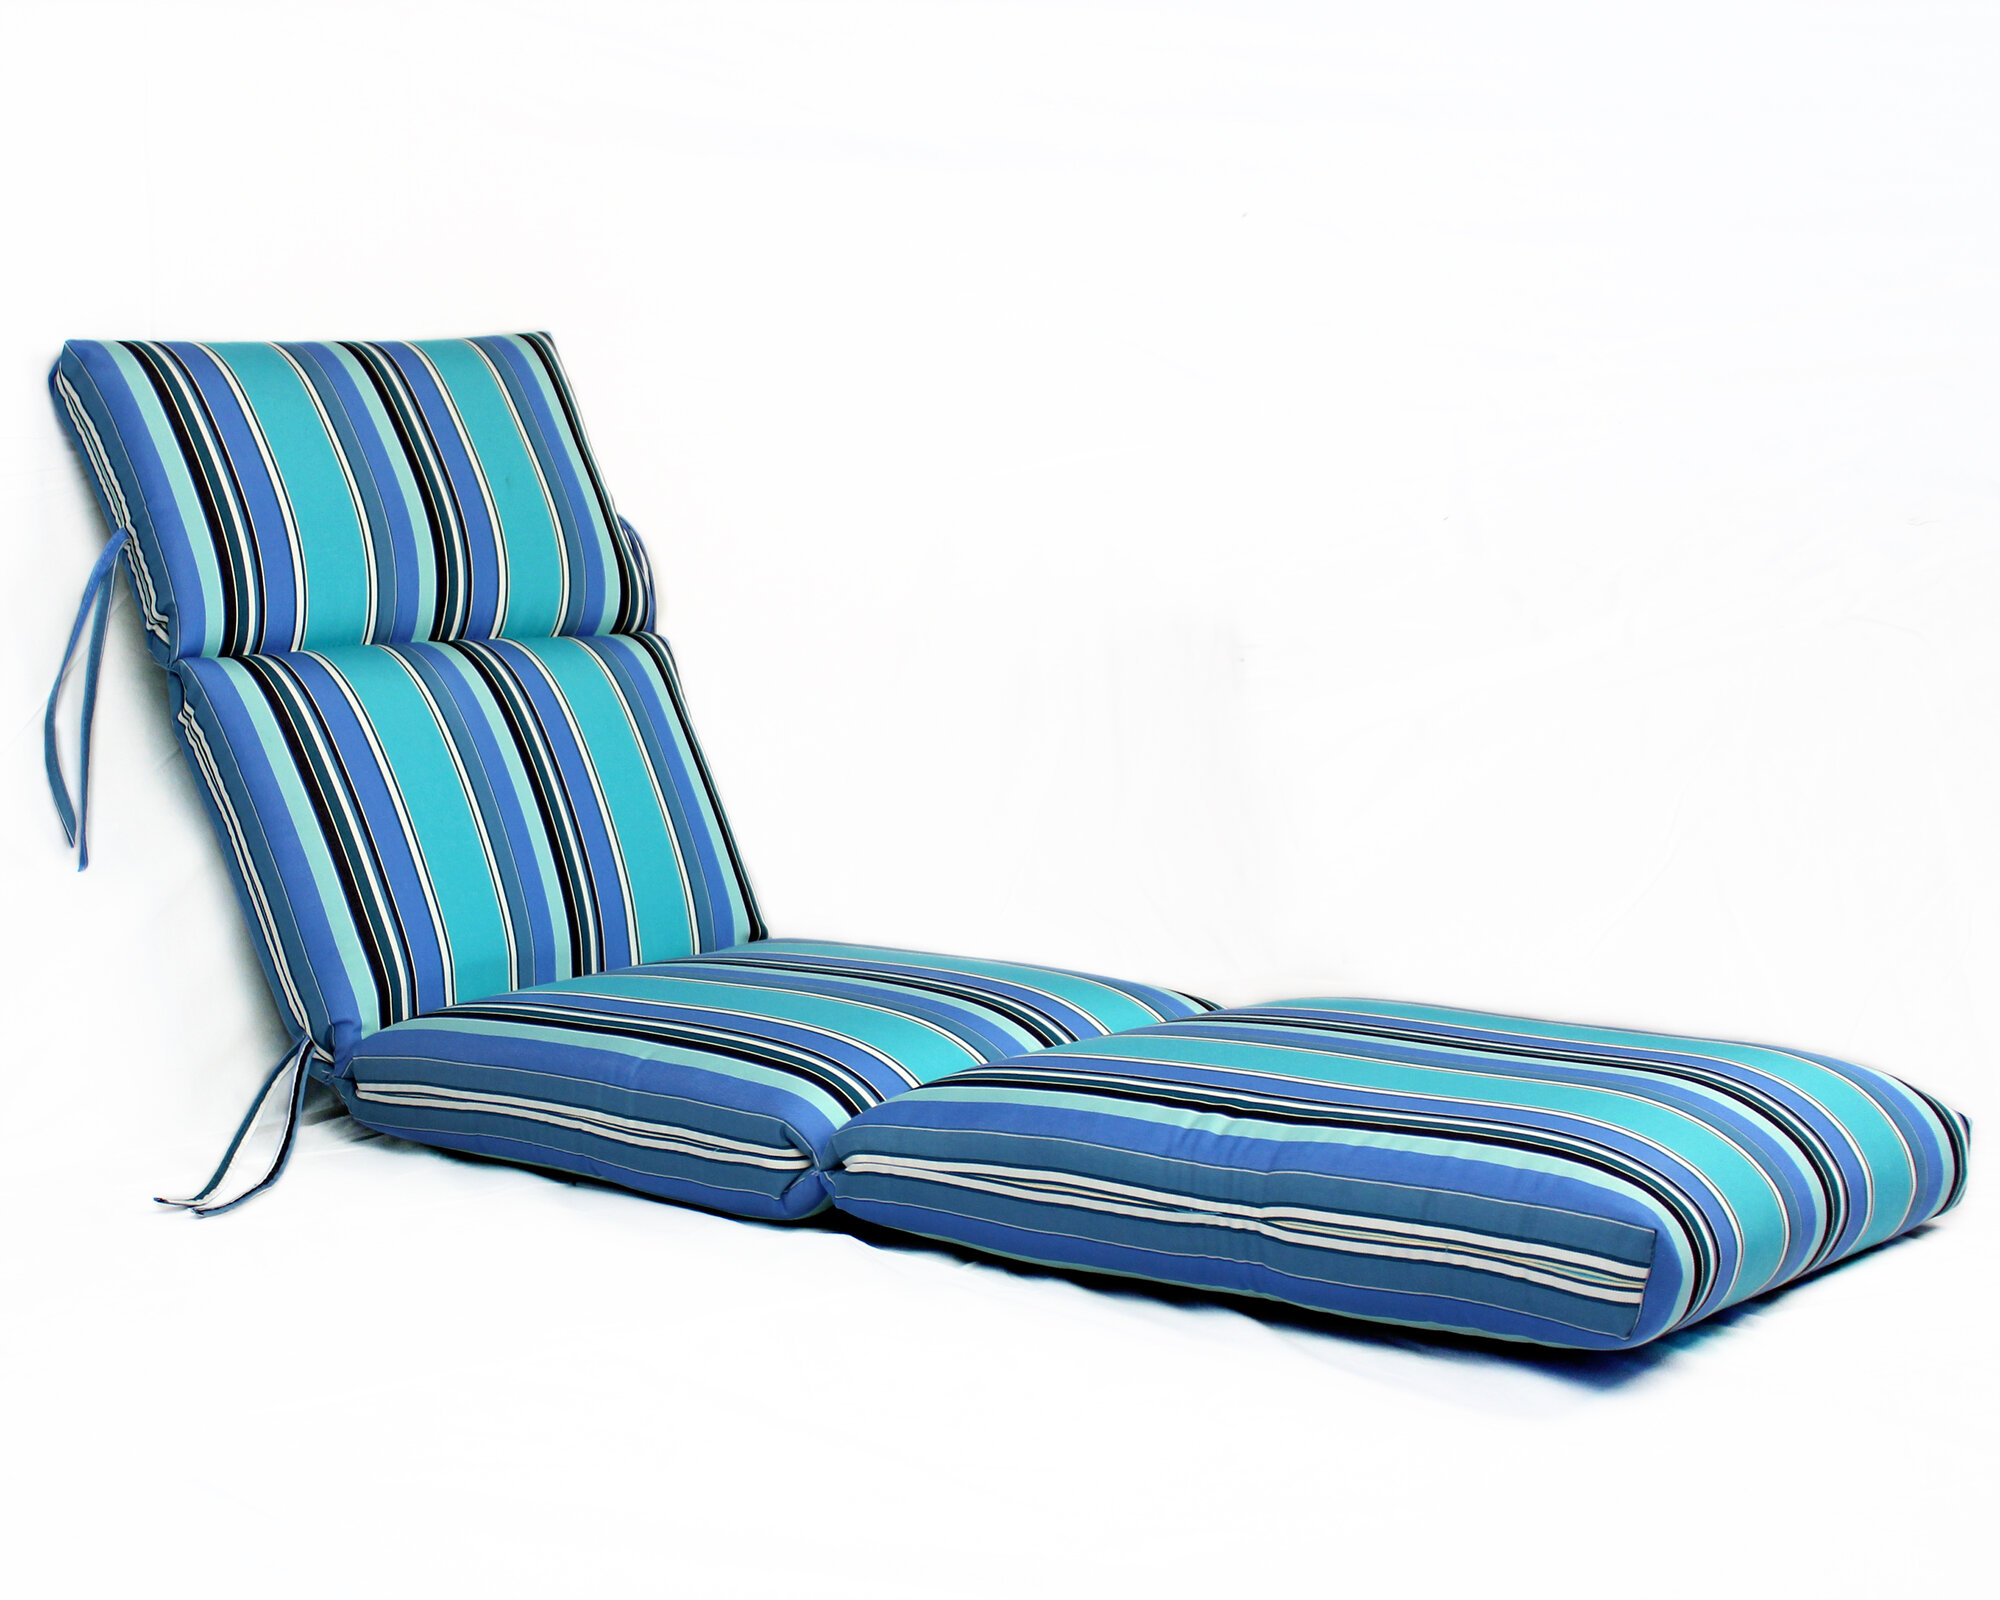 Comfort clas outdoor sunbrella chaise lounge cushion ebay for Chaise lounge cushion outdoor